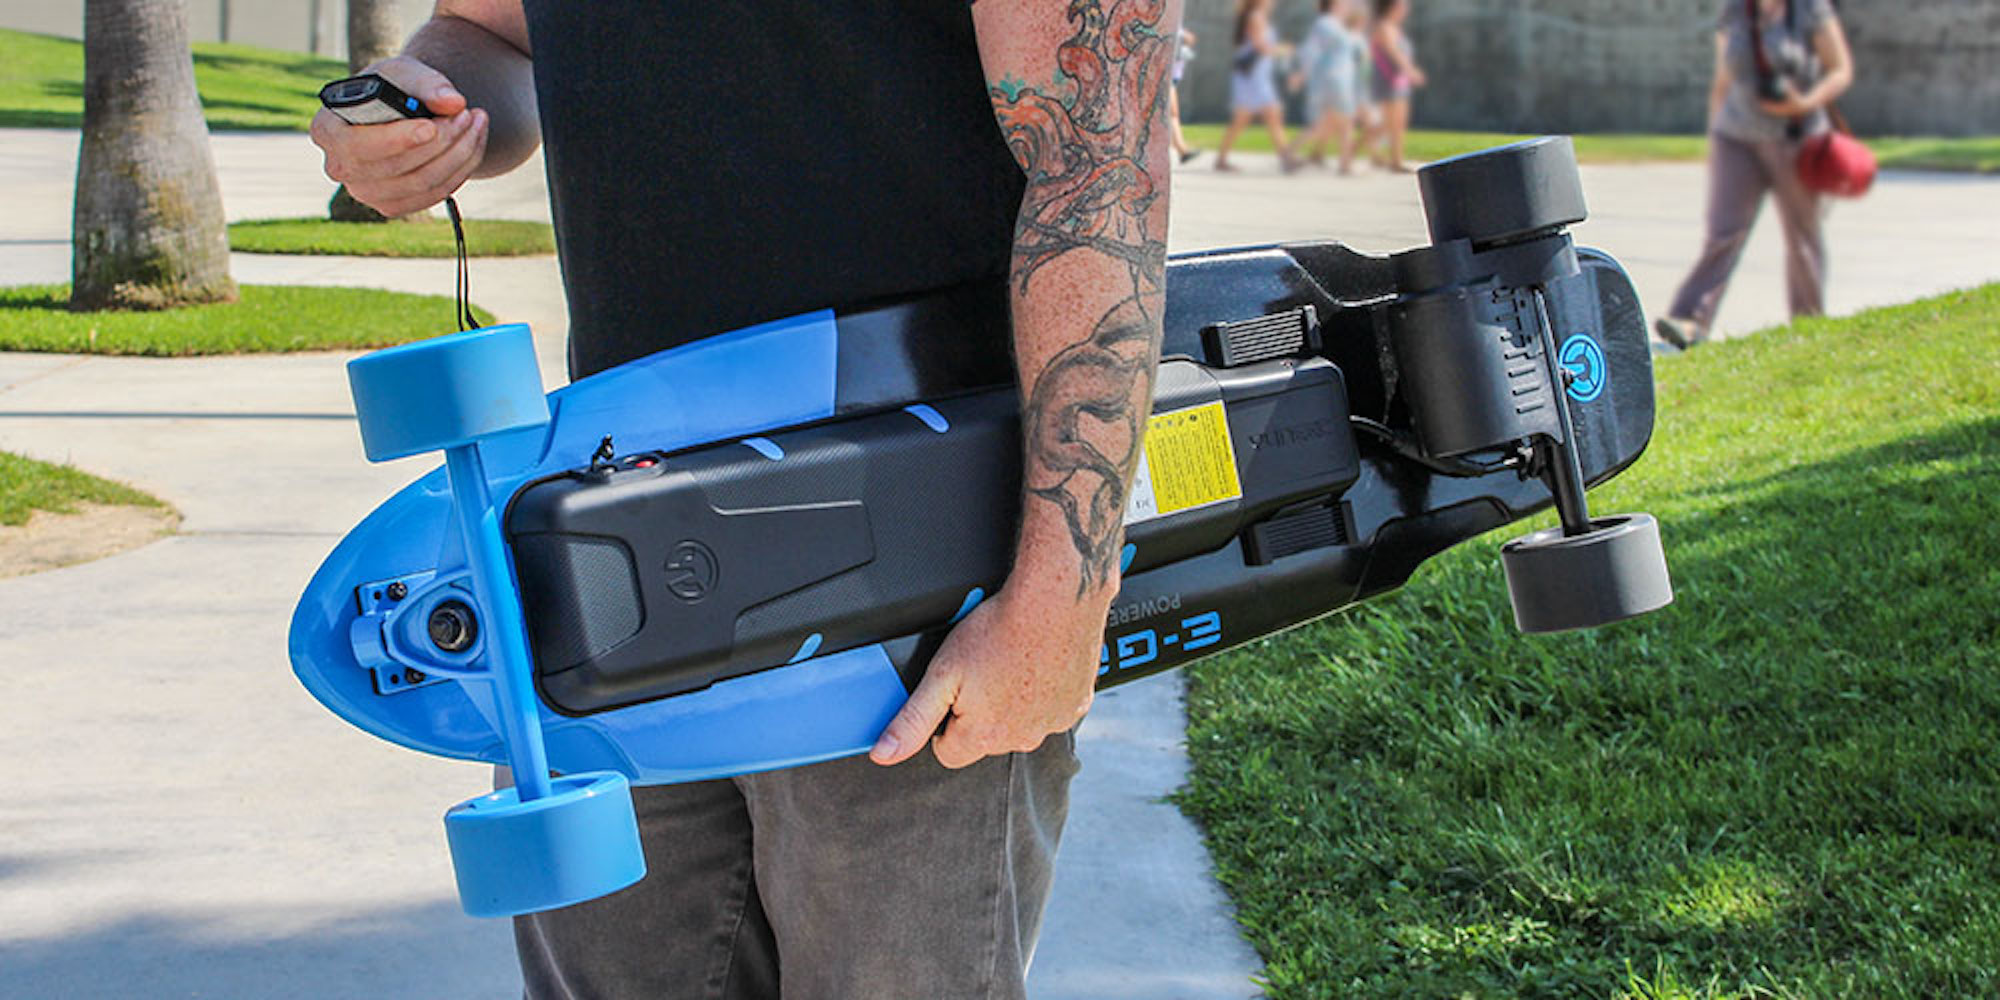 Take a Ride into the Future with the Yuneec EGo 2 Electric Longboard: $360 (Orig. $700)